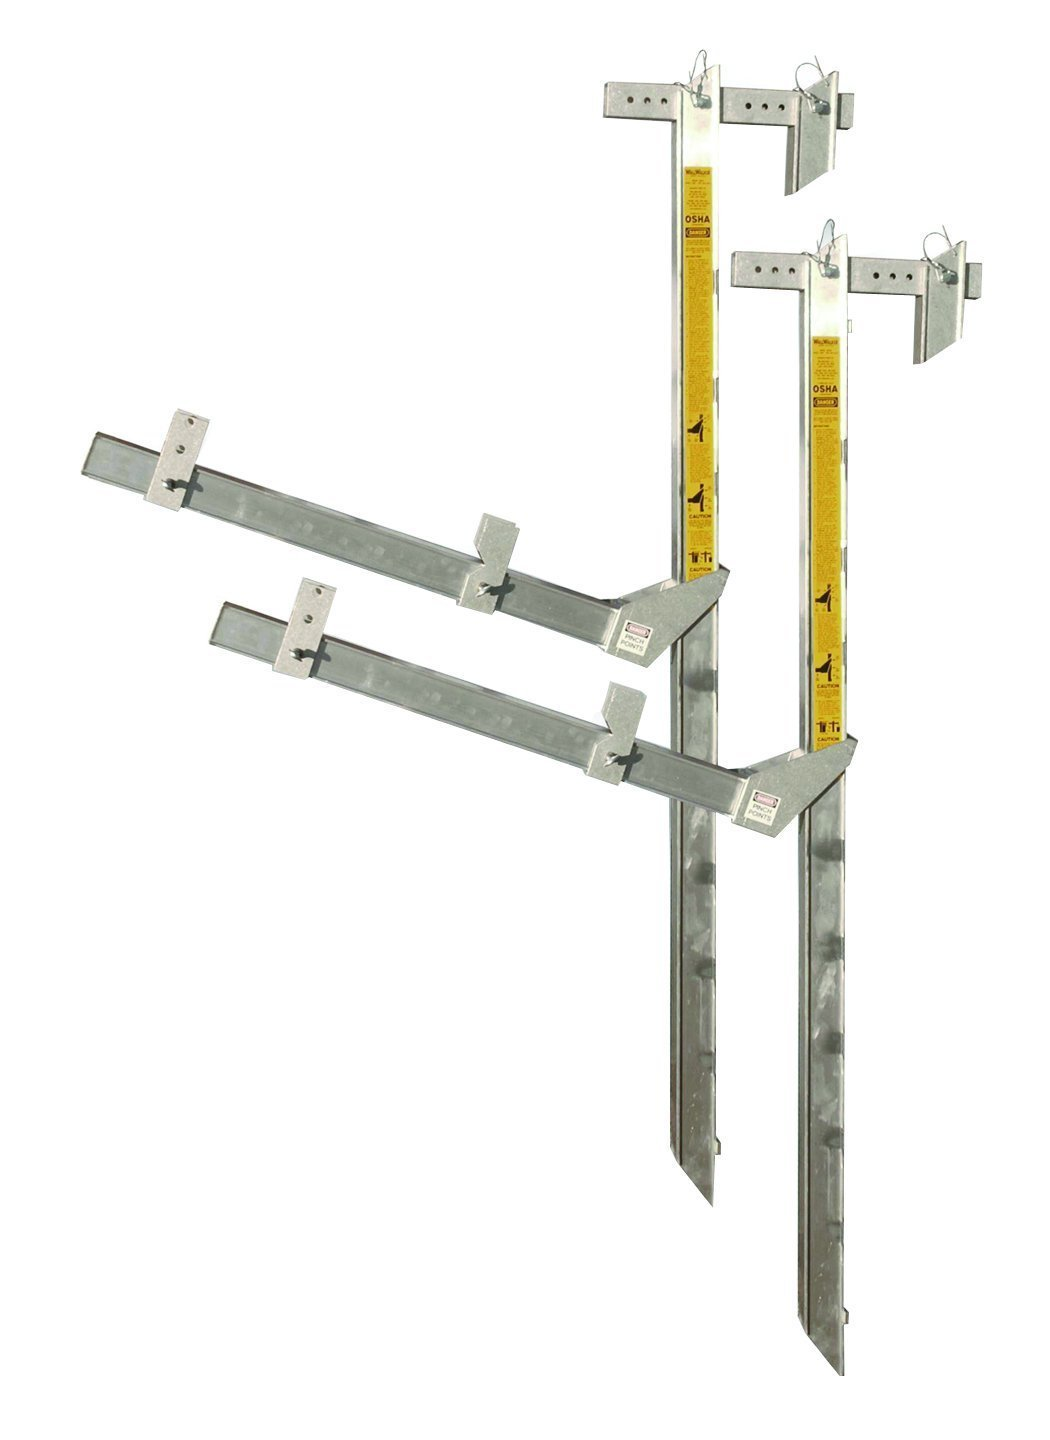 WallWalker 8 Foot Top-Plate Bracket Scaffold Set Aluminum(Pack of 2)